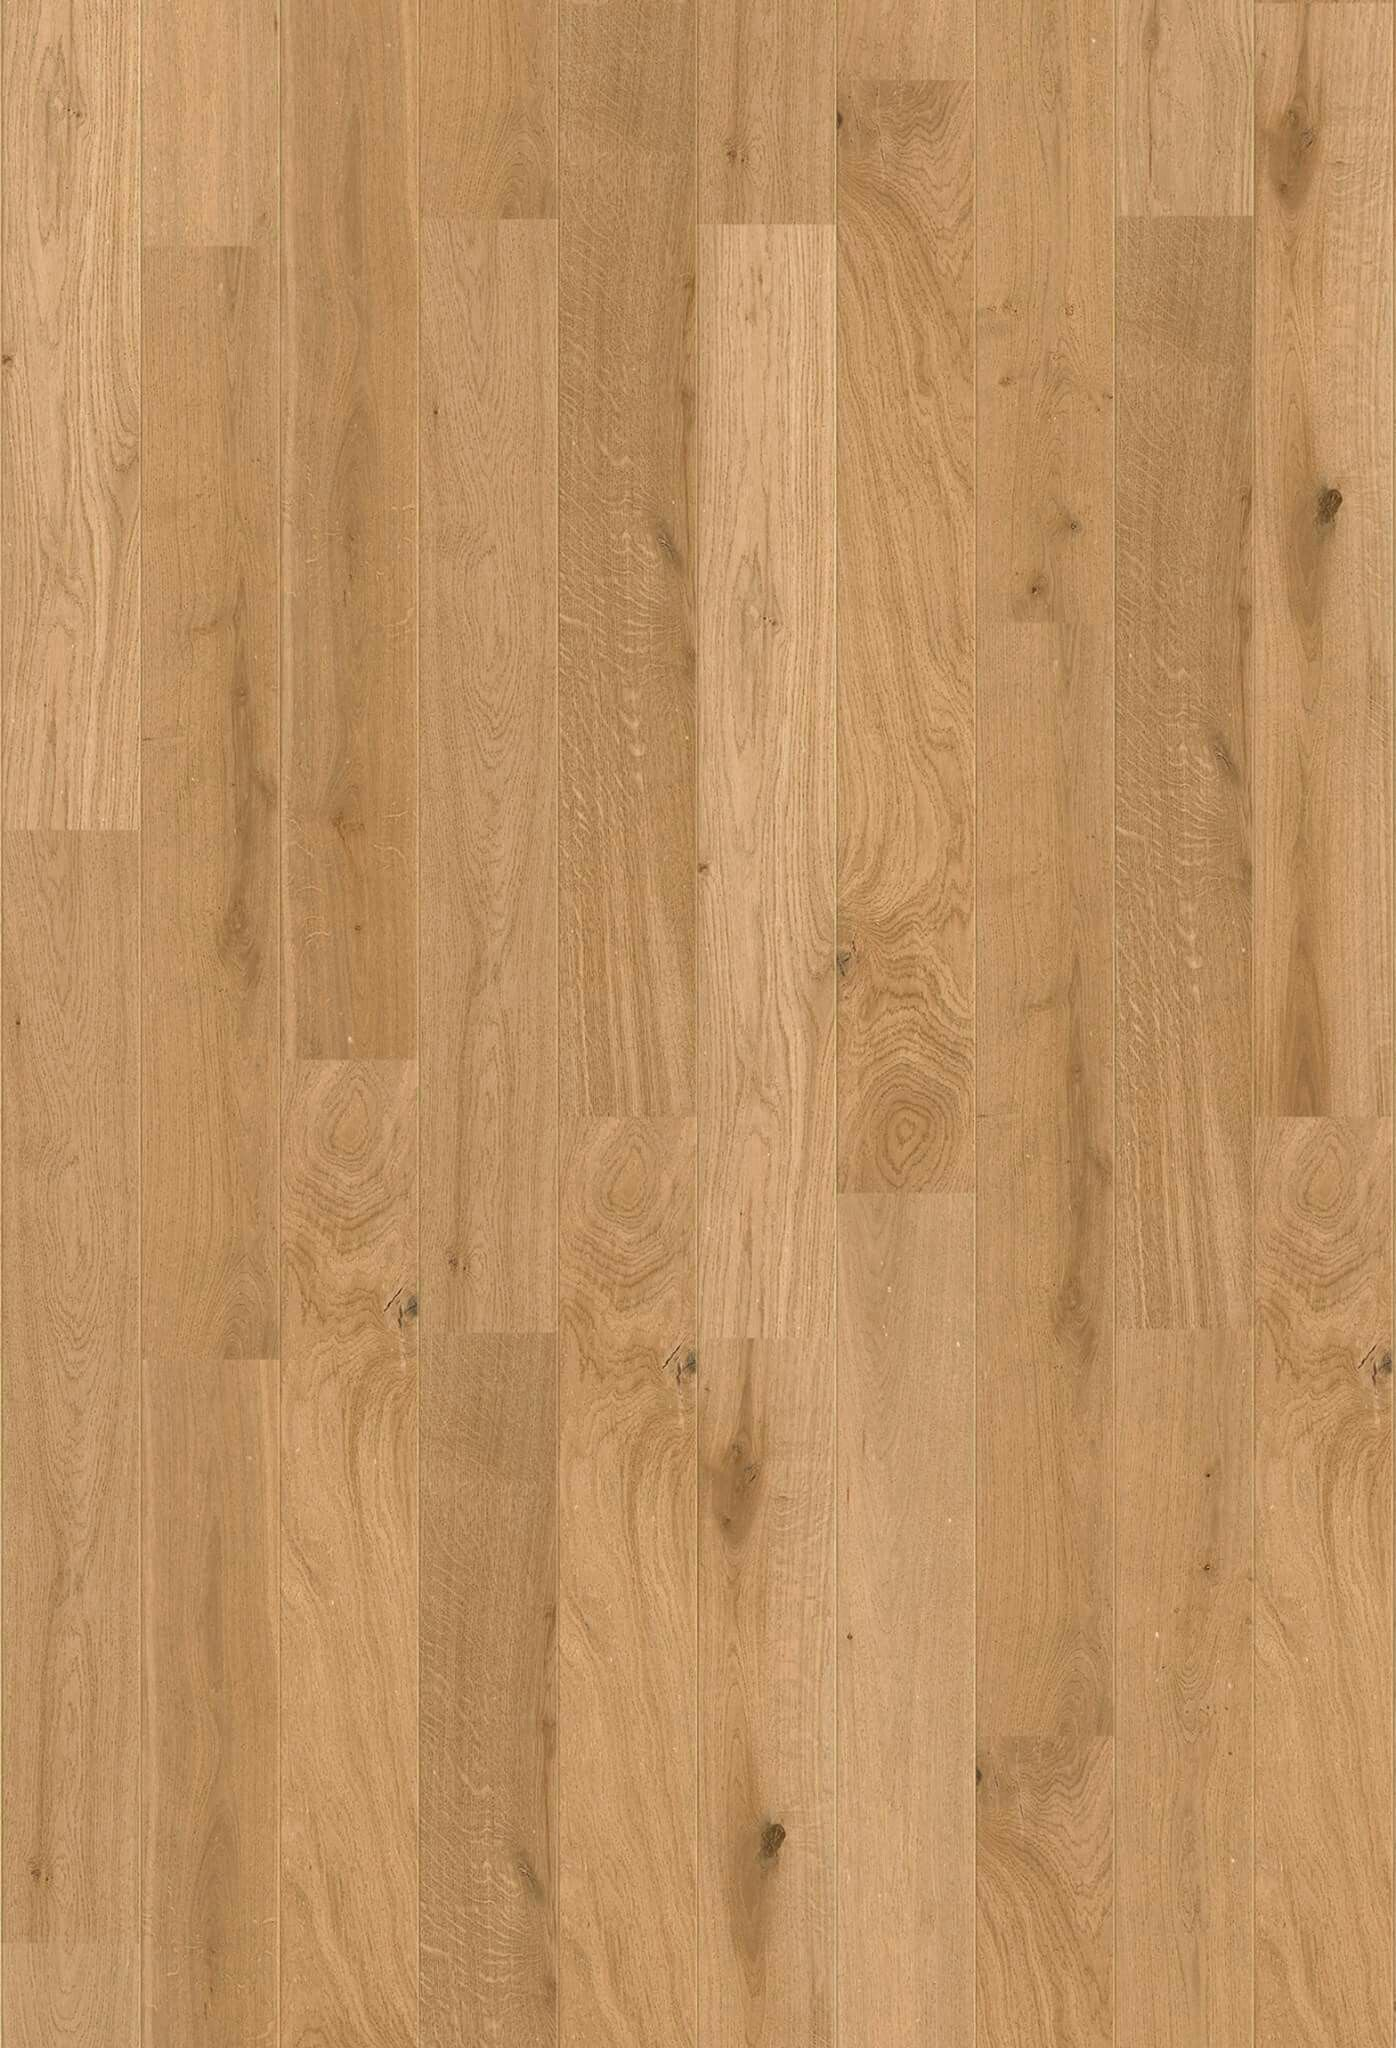 Pin By Manish Kankani On Floor Covering S Laminate